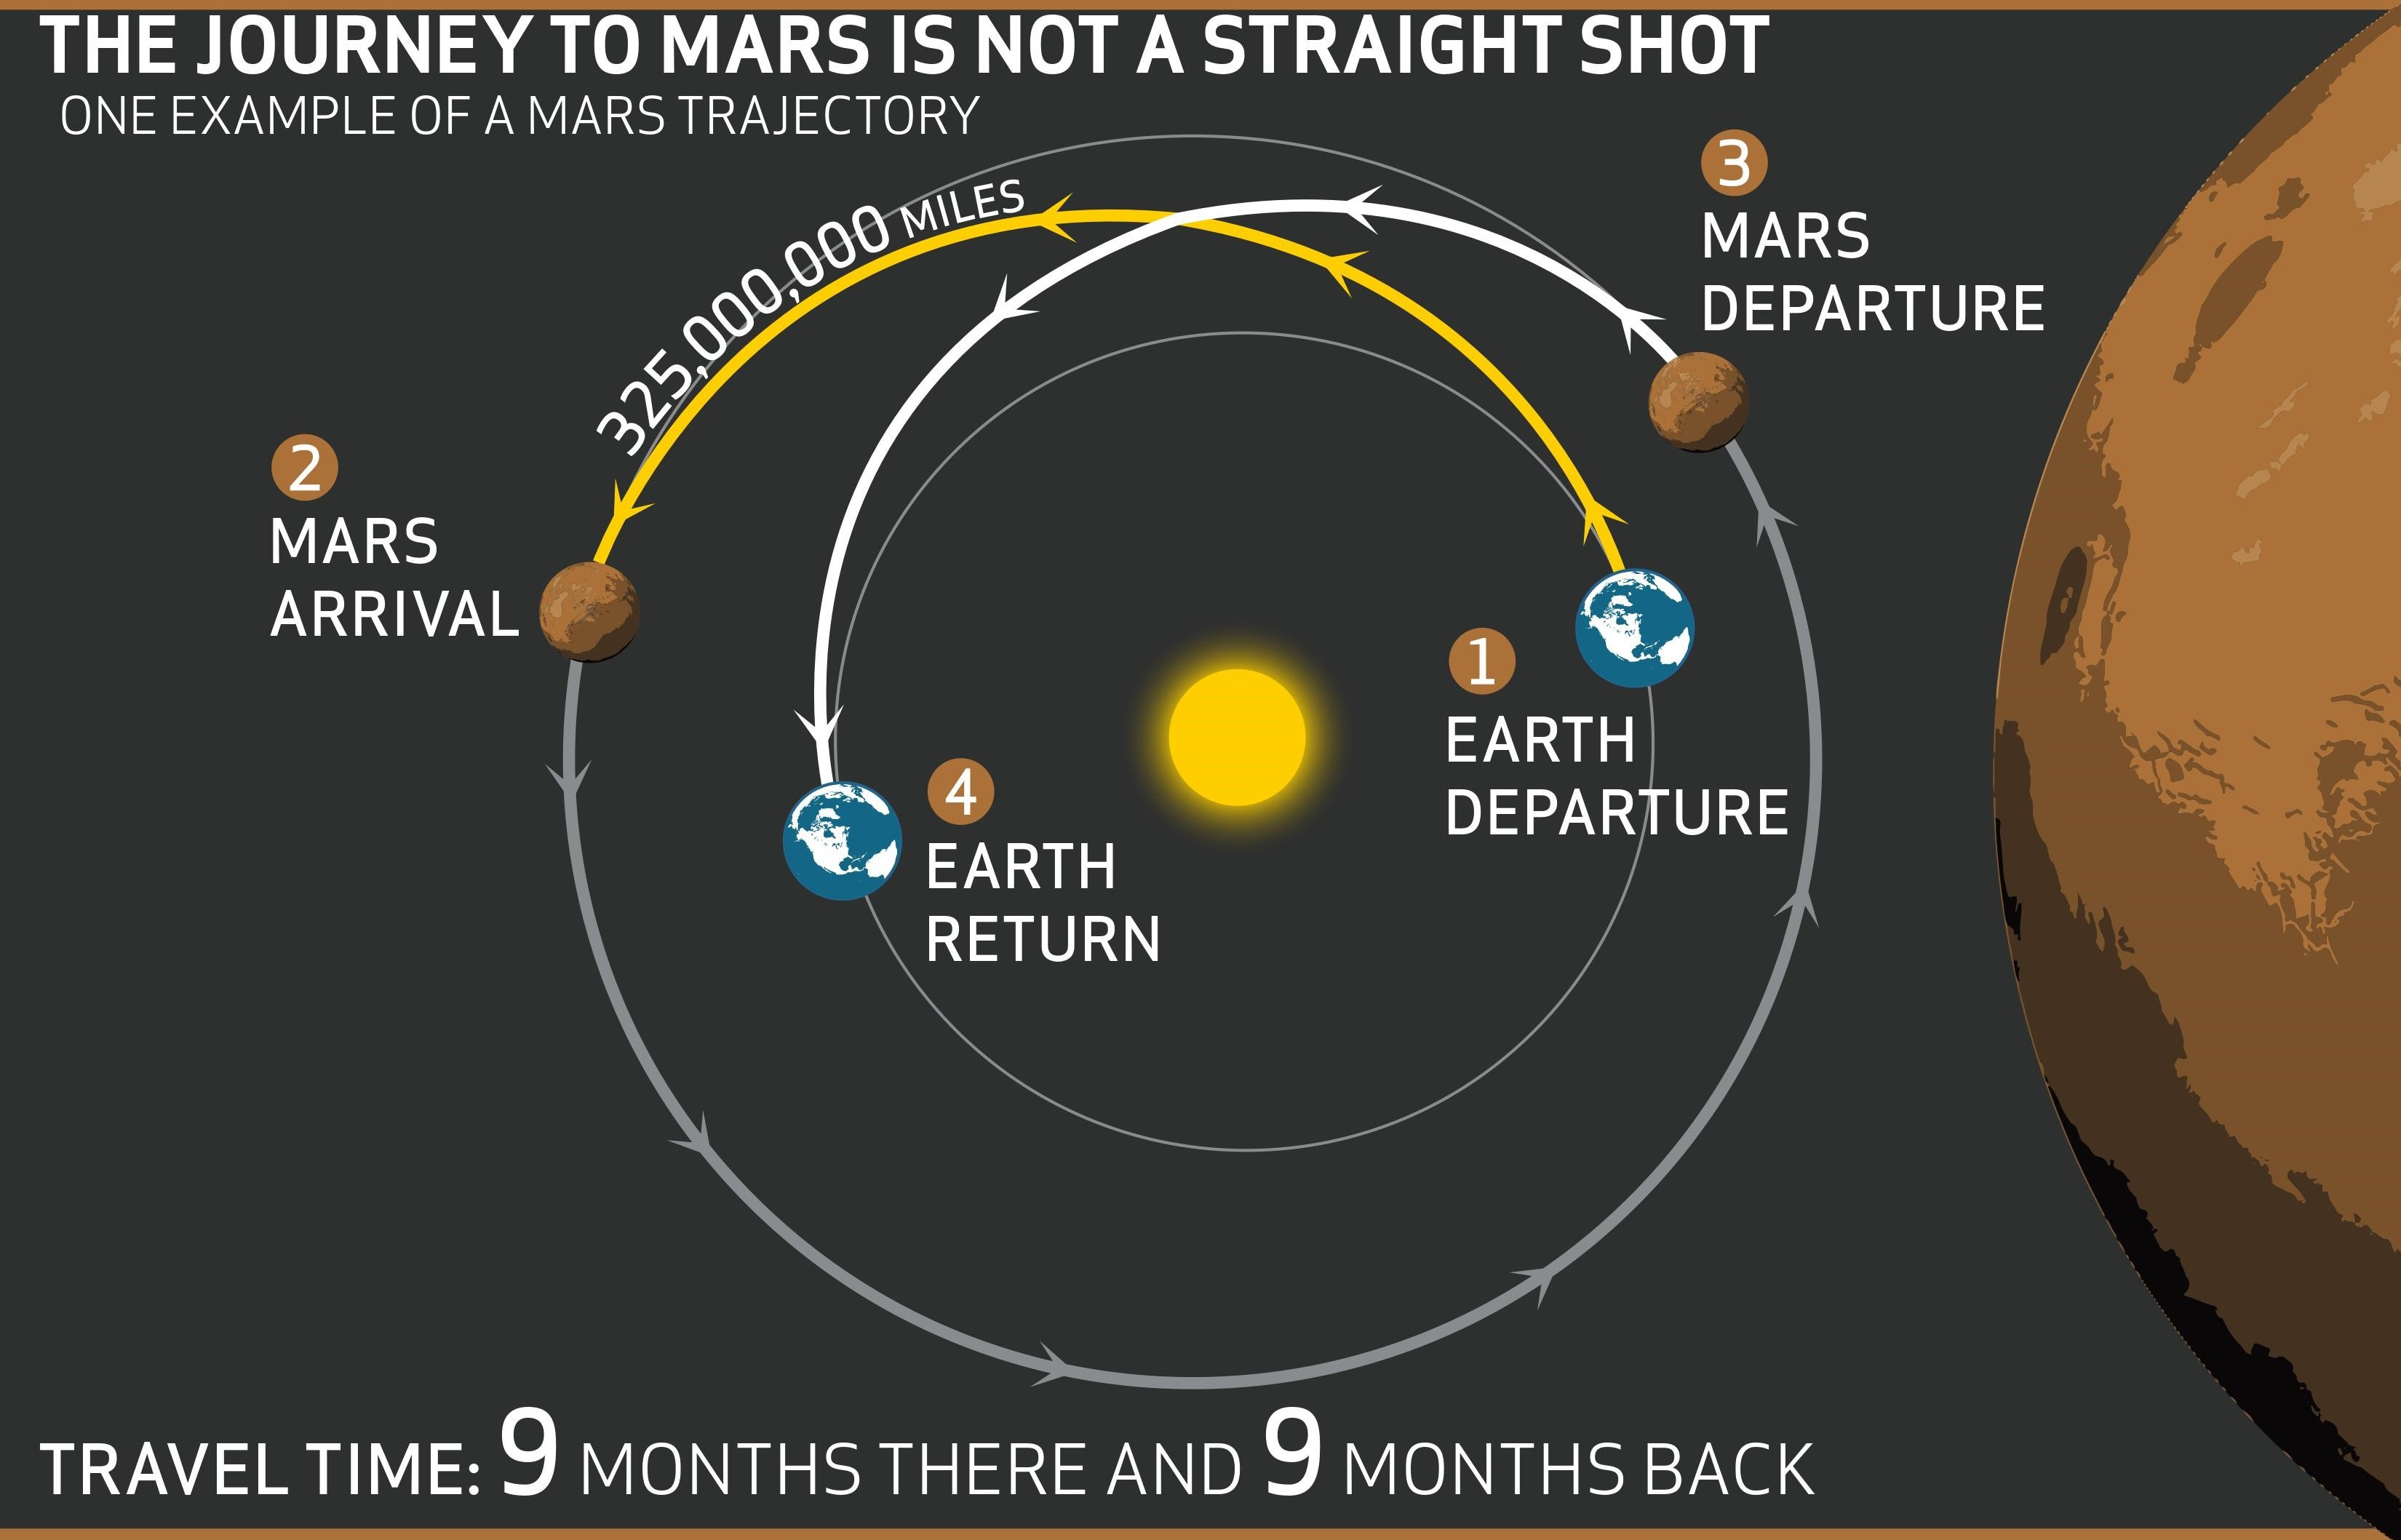 Iss and distance to mars trip